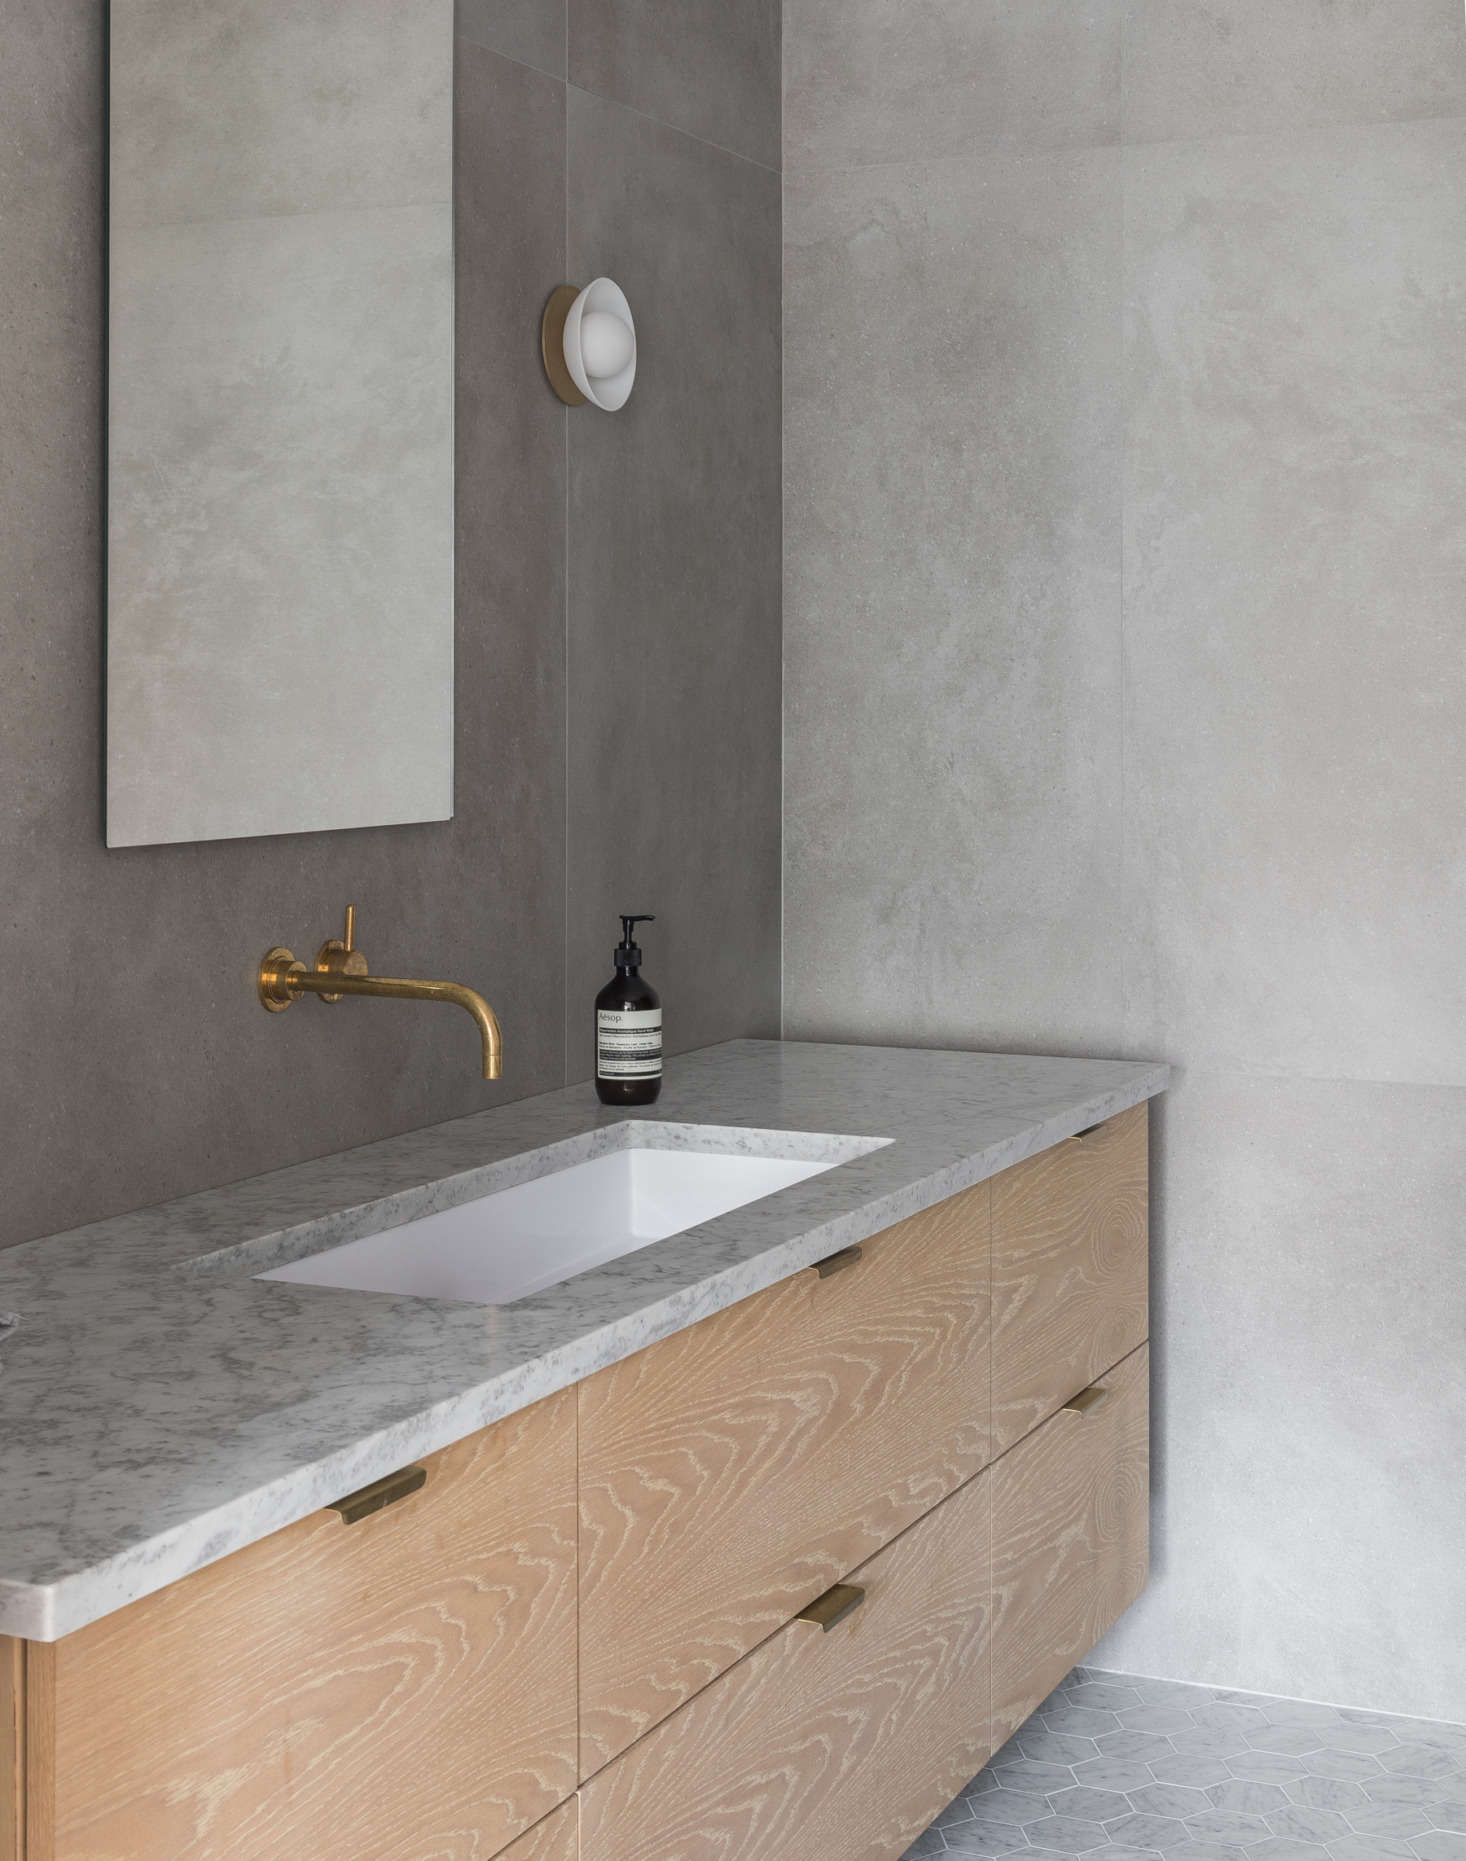 The architects used Nemo's large-format Area porcelain tiles on the walls. The floating vanity countertop echoes that of the kitchen—honed Carrara marble. The faucet is from California Faucets and the sconce is Allied Maker's Flush Dome.